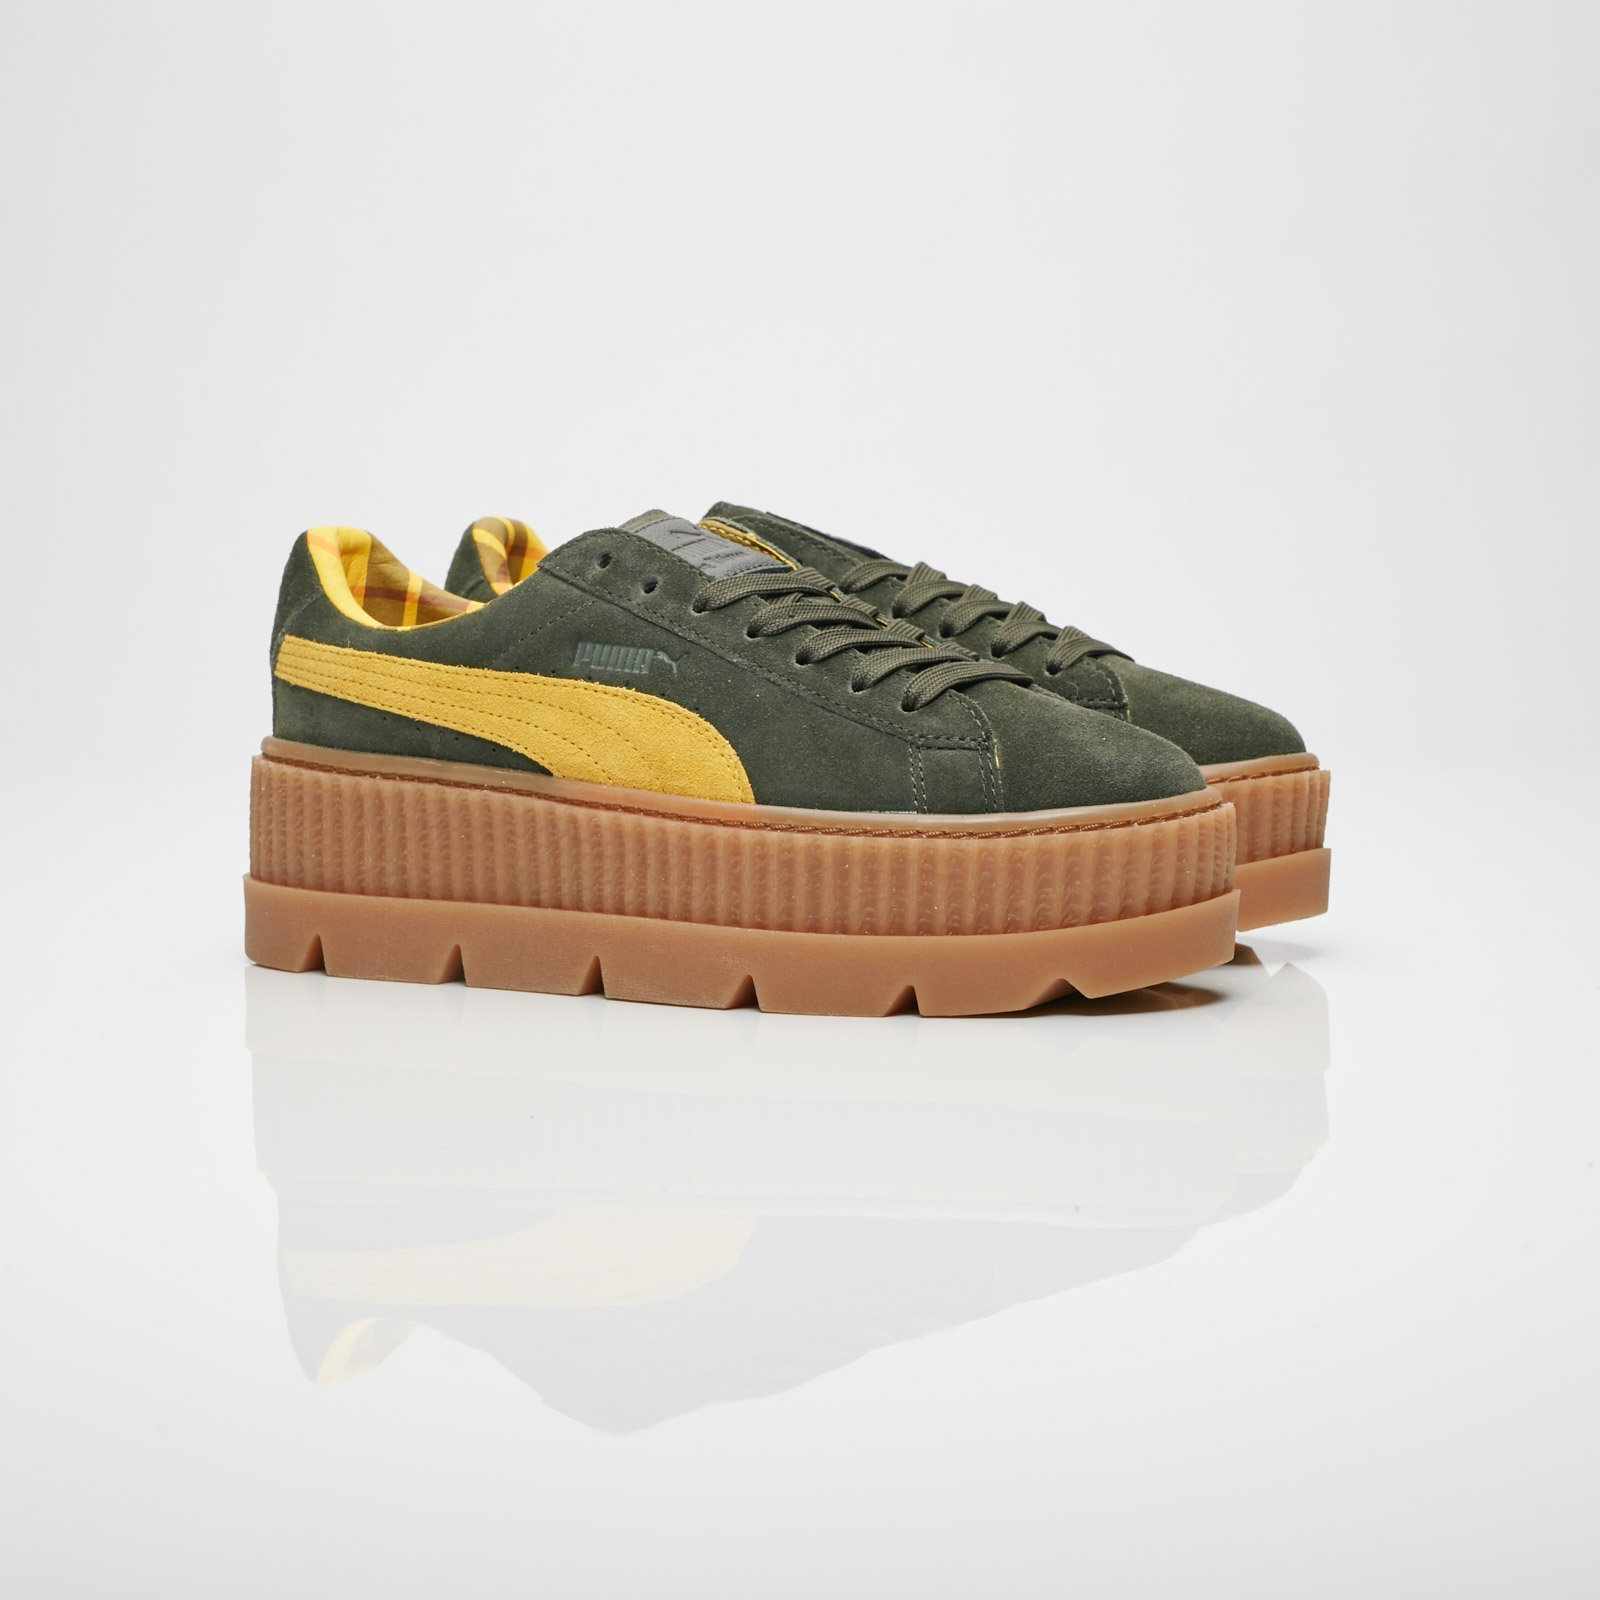 Puma Cleated Creeper Suede Wns - 366268-01 - Sneakersnstuff ... 8dcc0b03c